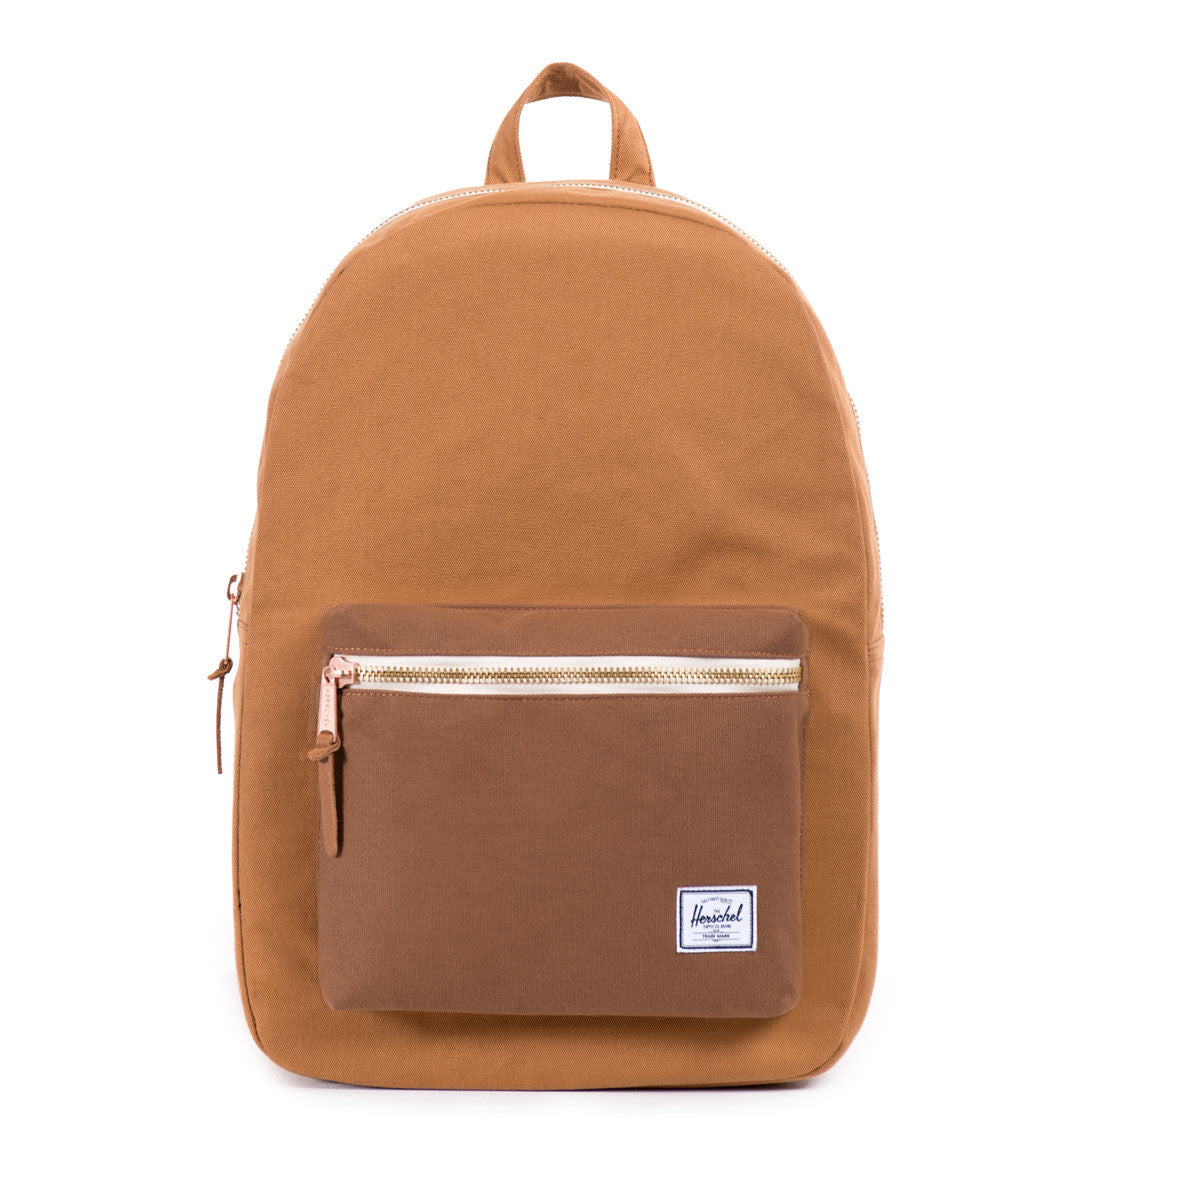 Herschel Supply Co.: Settlement Backpack - Caramel Coated Cotton Canvas (Select Series) front